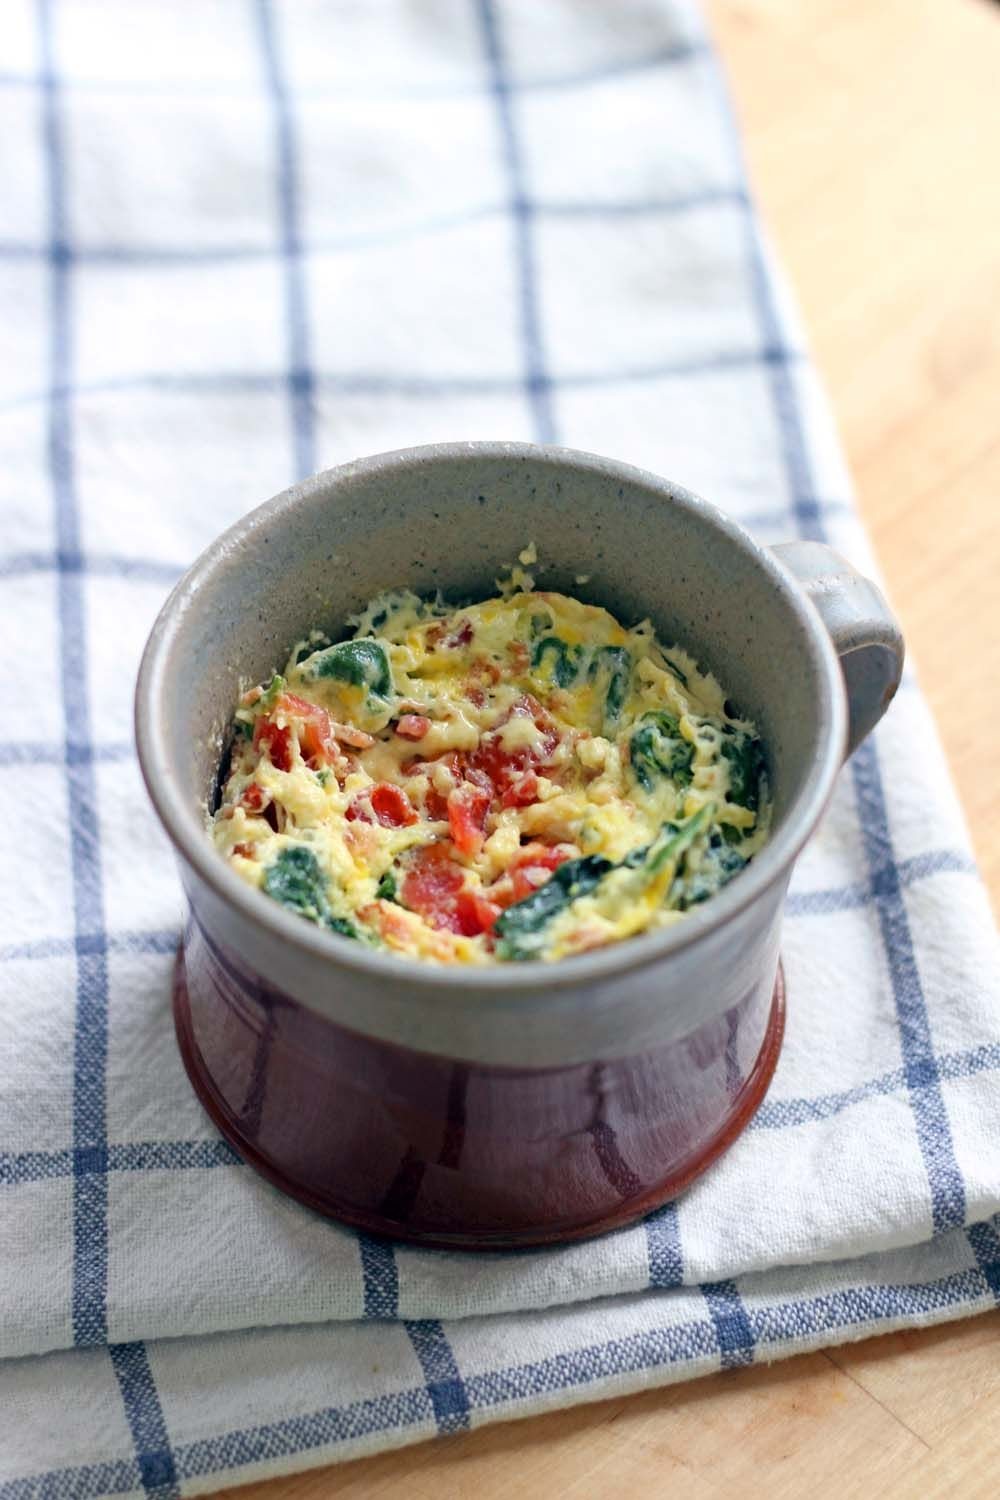 spinach and cheddar microwaveable quiche in a mug